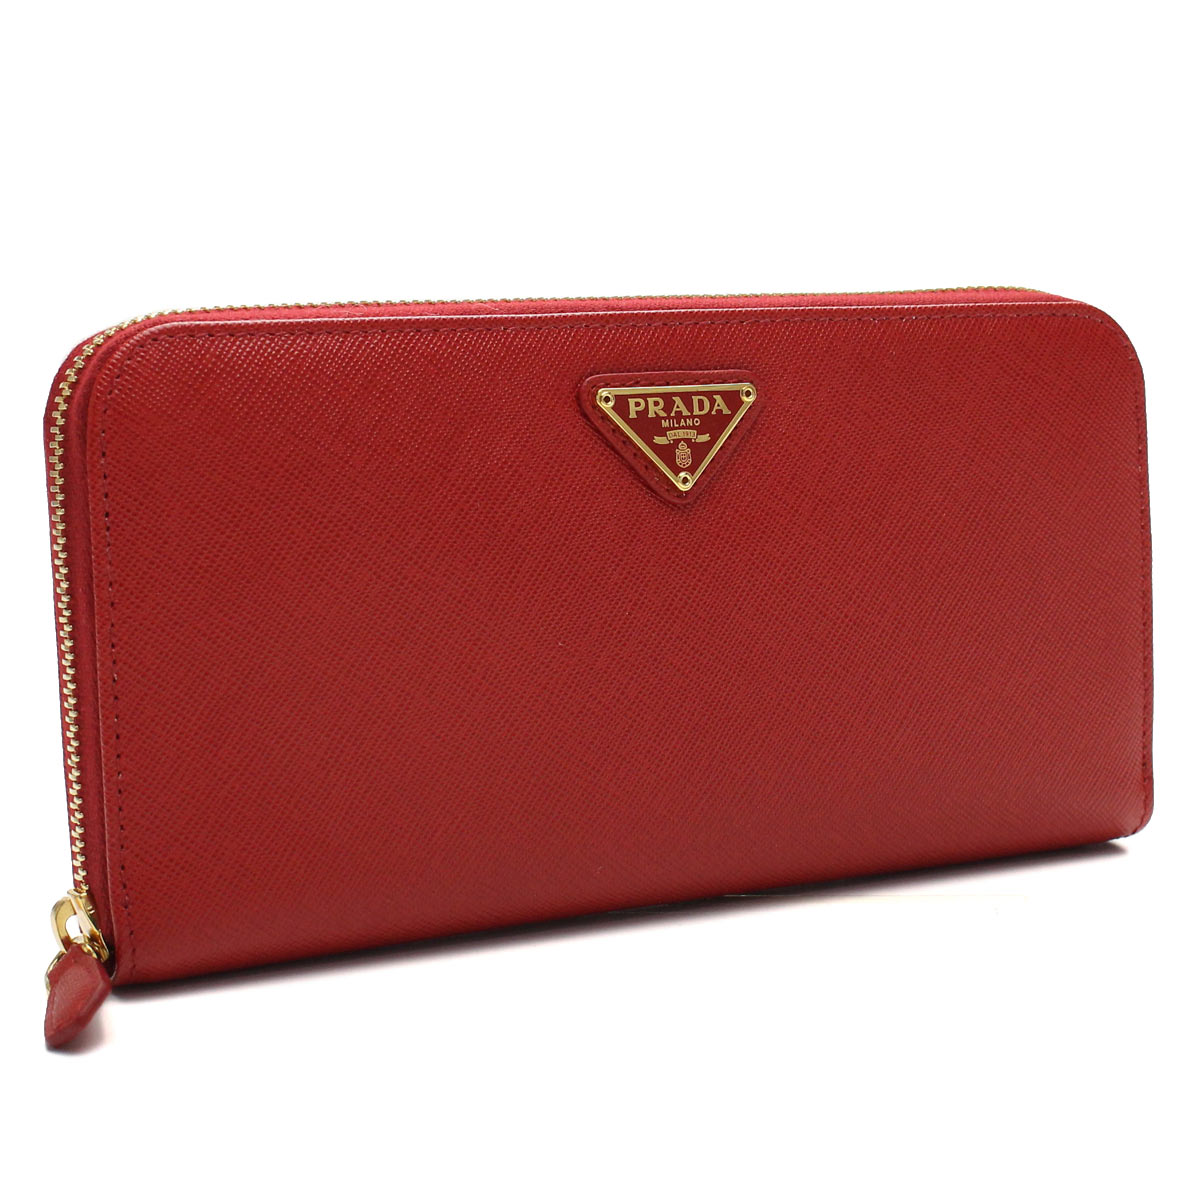 801d348454b89 Prada (PRADA) Zip around wallet coin with QHH-F068Z FUOCO red series(  taxfree send by EMS authentic A brand new item )